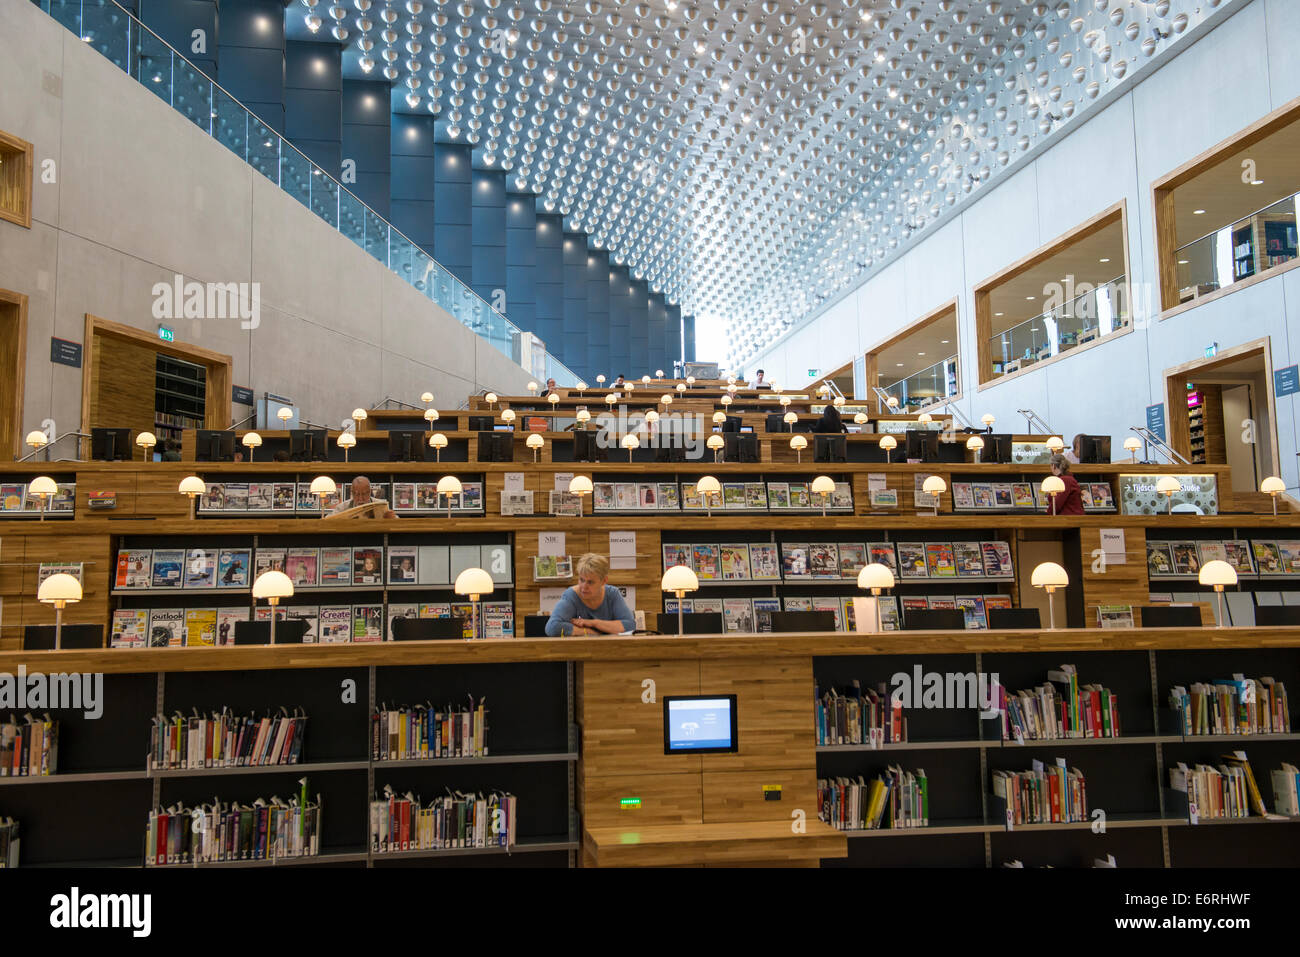 Readers in The Eemhuis in Amersfoort, Netherlands. The building is a cultural centre that combining a library, the - Stock Image